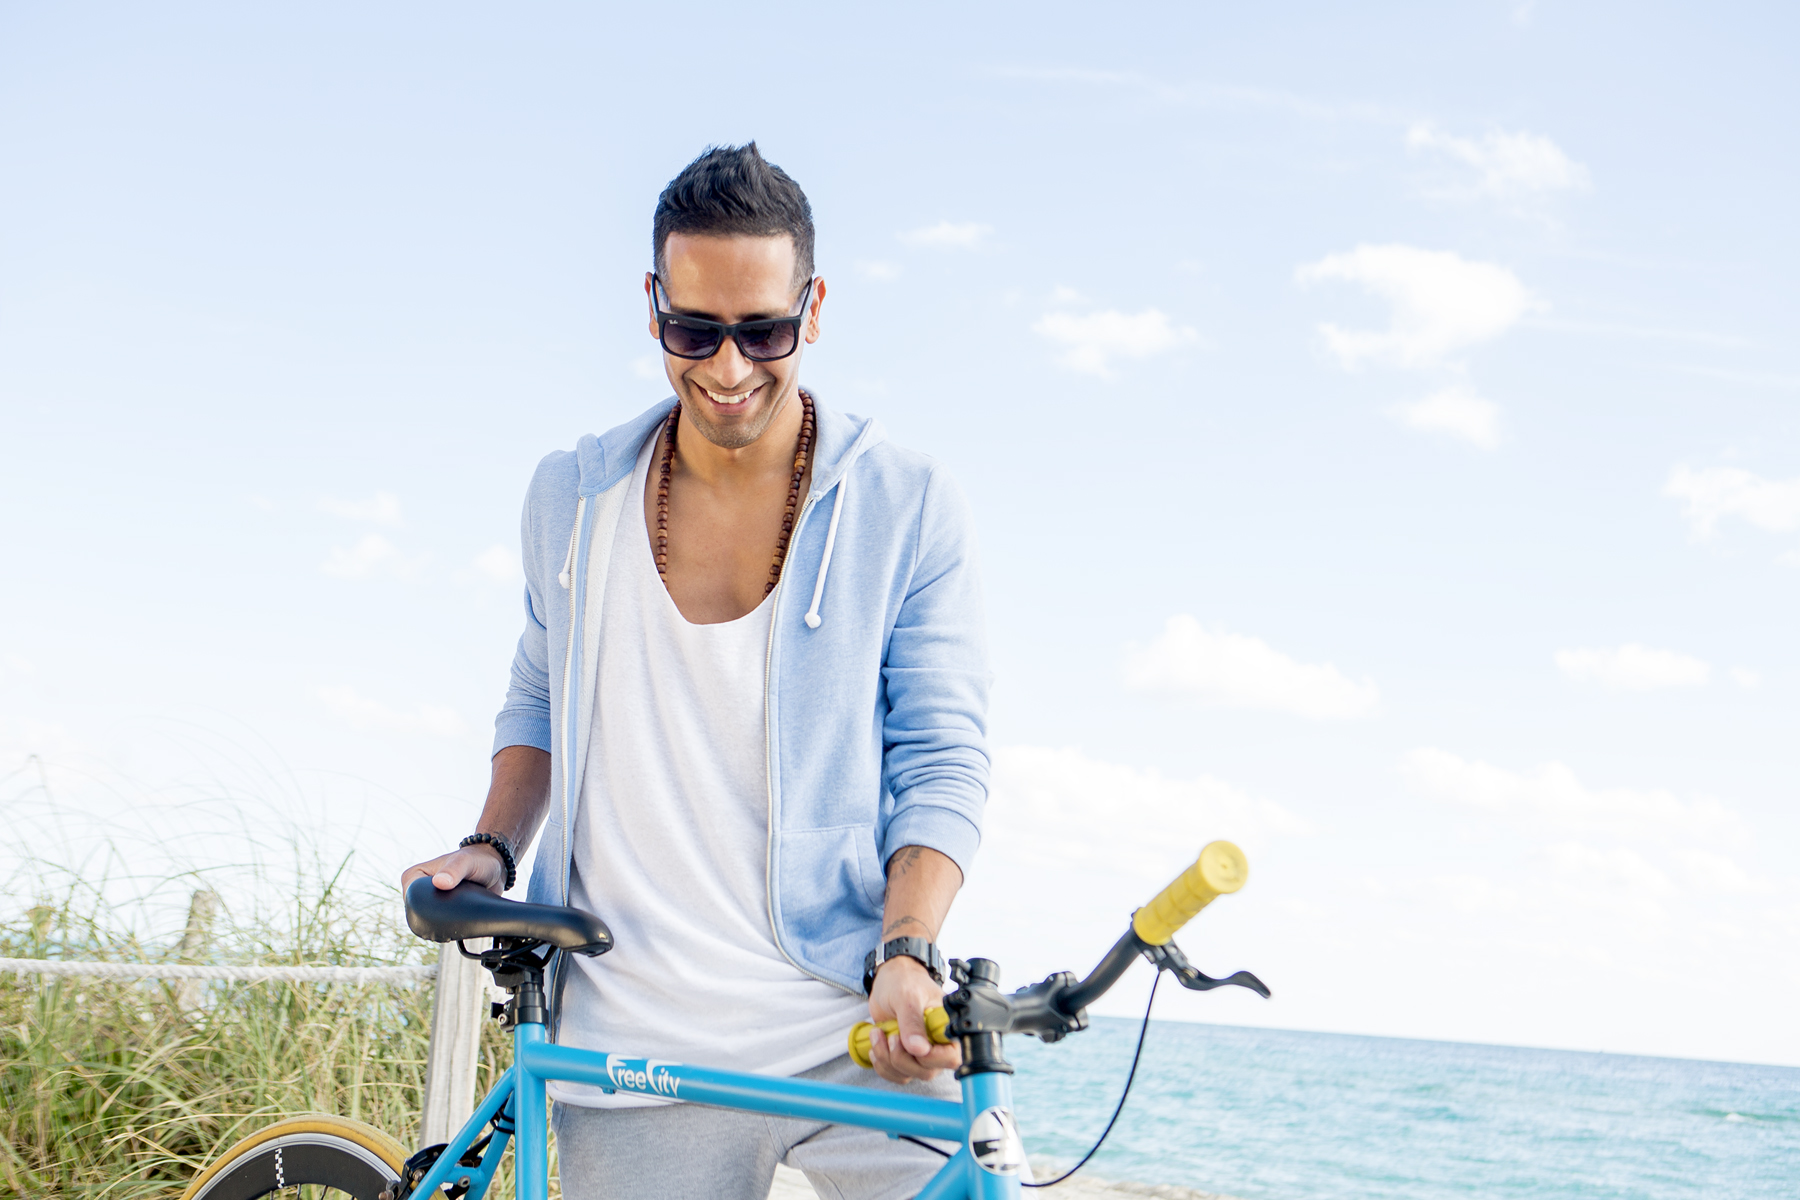 lifestyle_photography_miami_beach_new_york_david_gonzalez_healthcare_photographer_lifestyle_portrait__bici_fun_advertising_1800.jpg